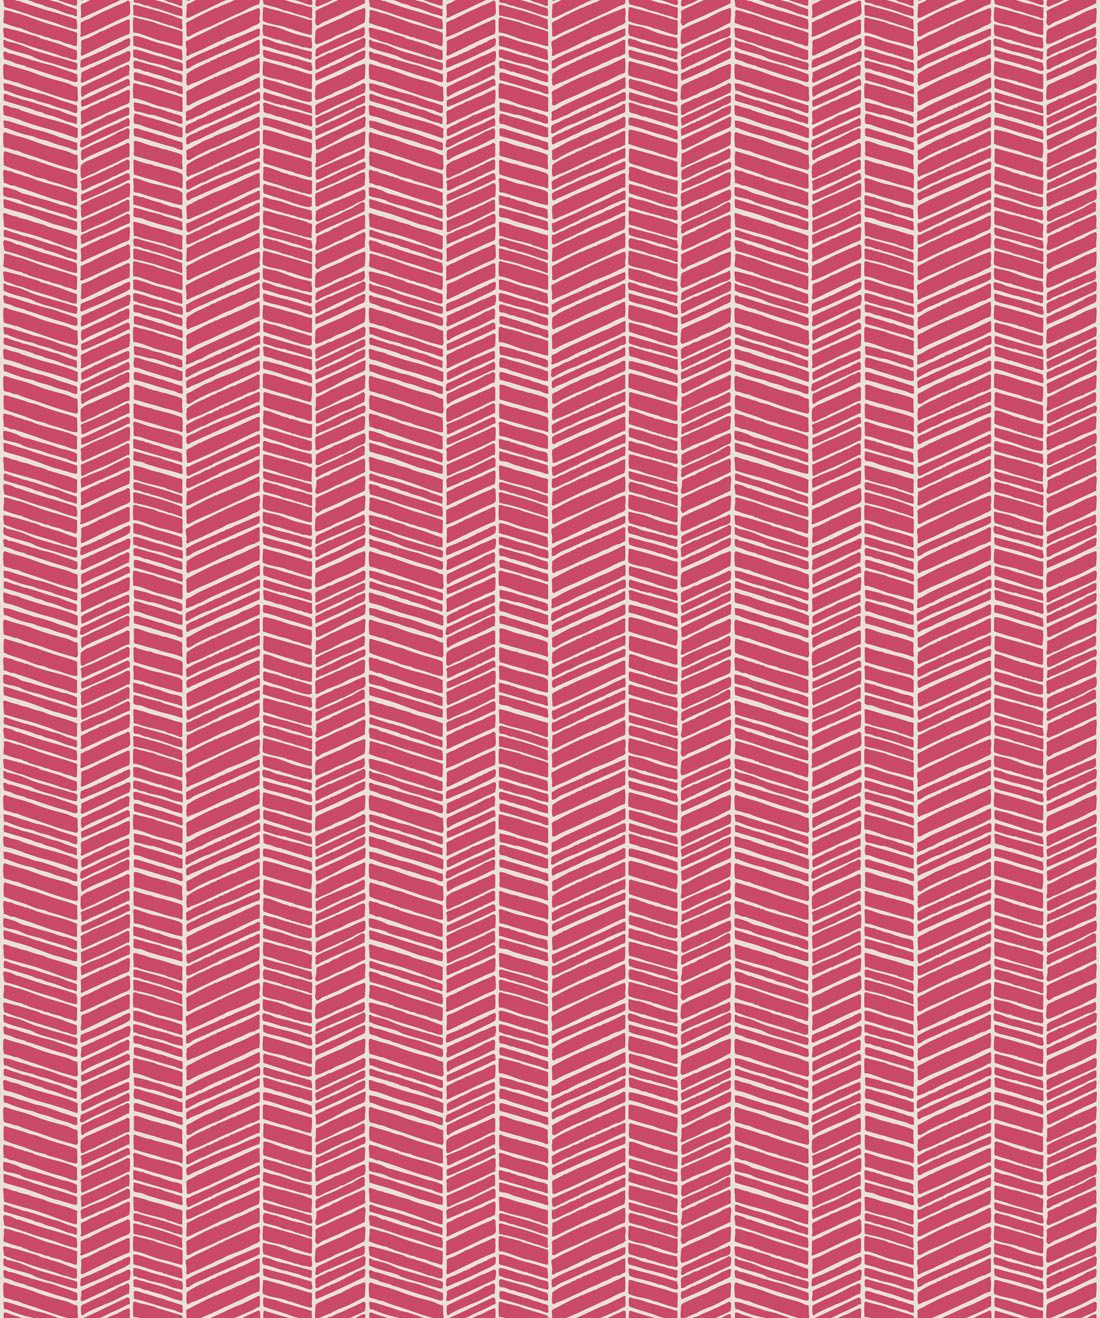 Herringbone Pink Quince Wallpaper